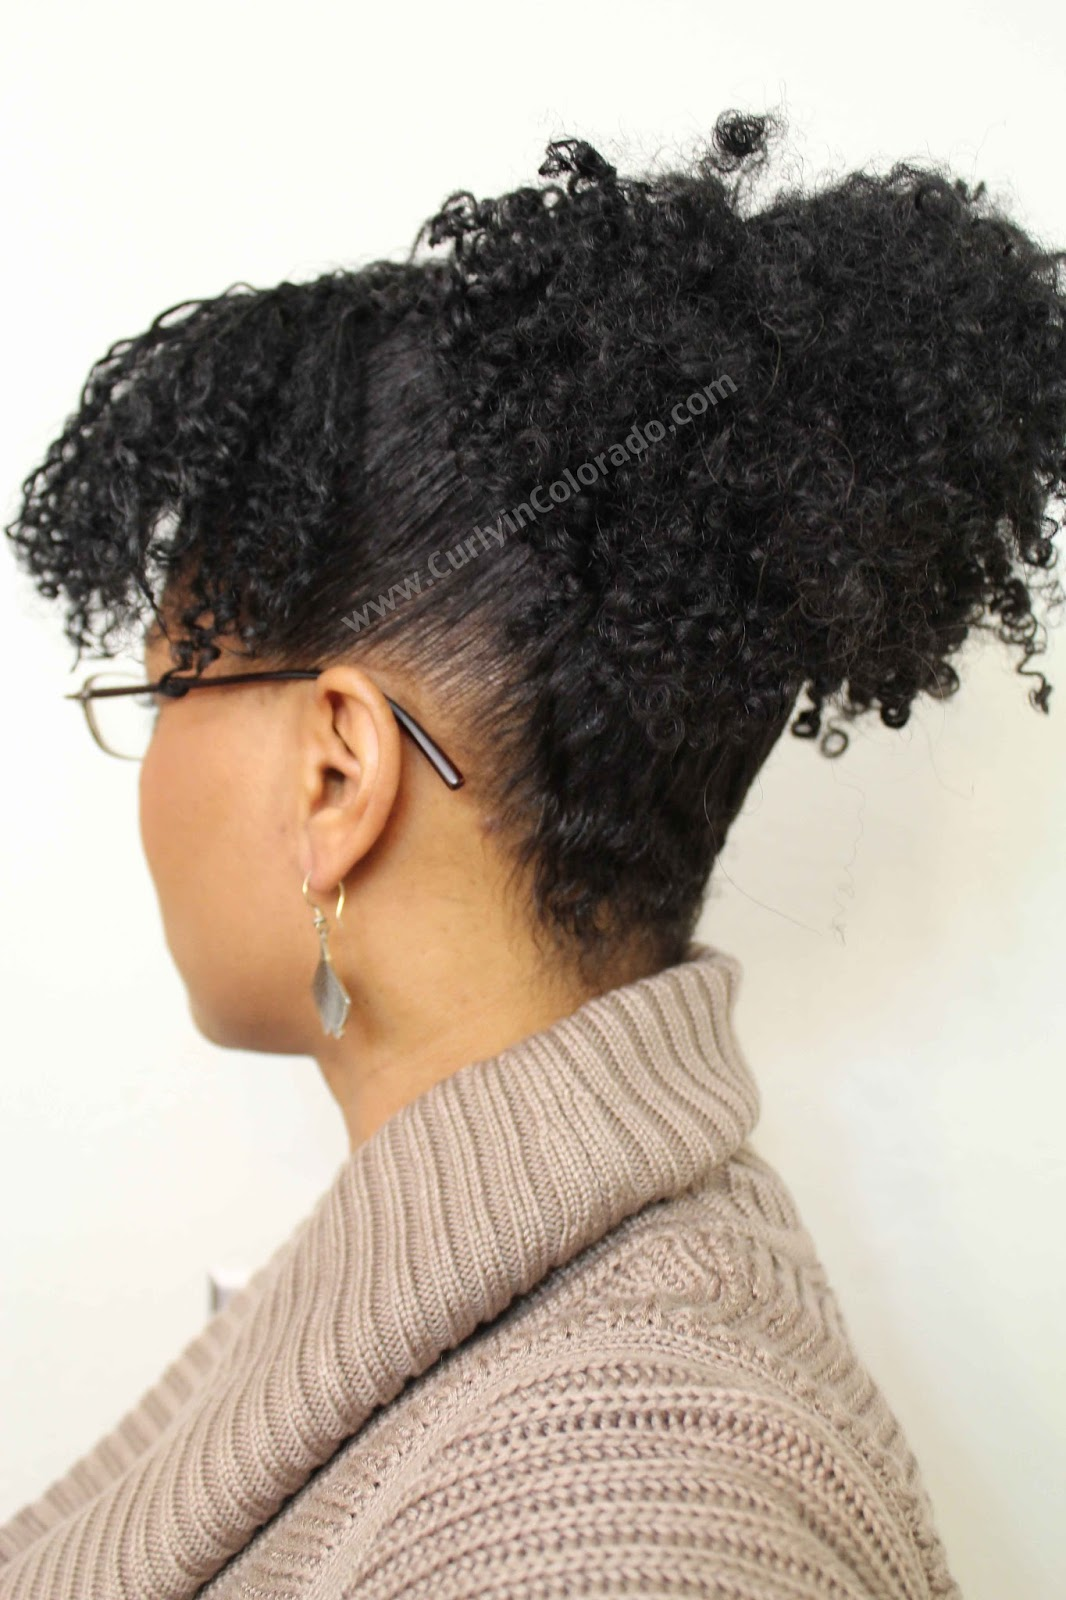 www.curlyincolorado.com Protective Style Challenge week 3 The Puff